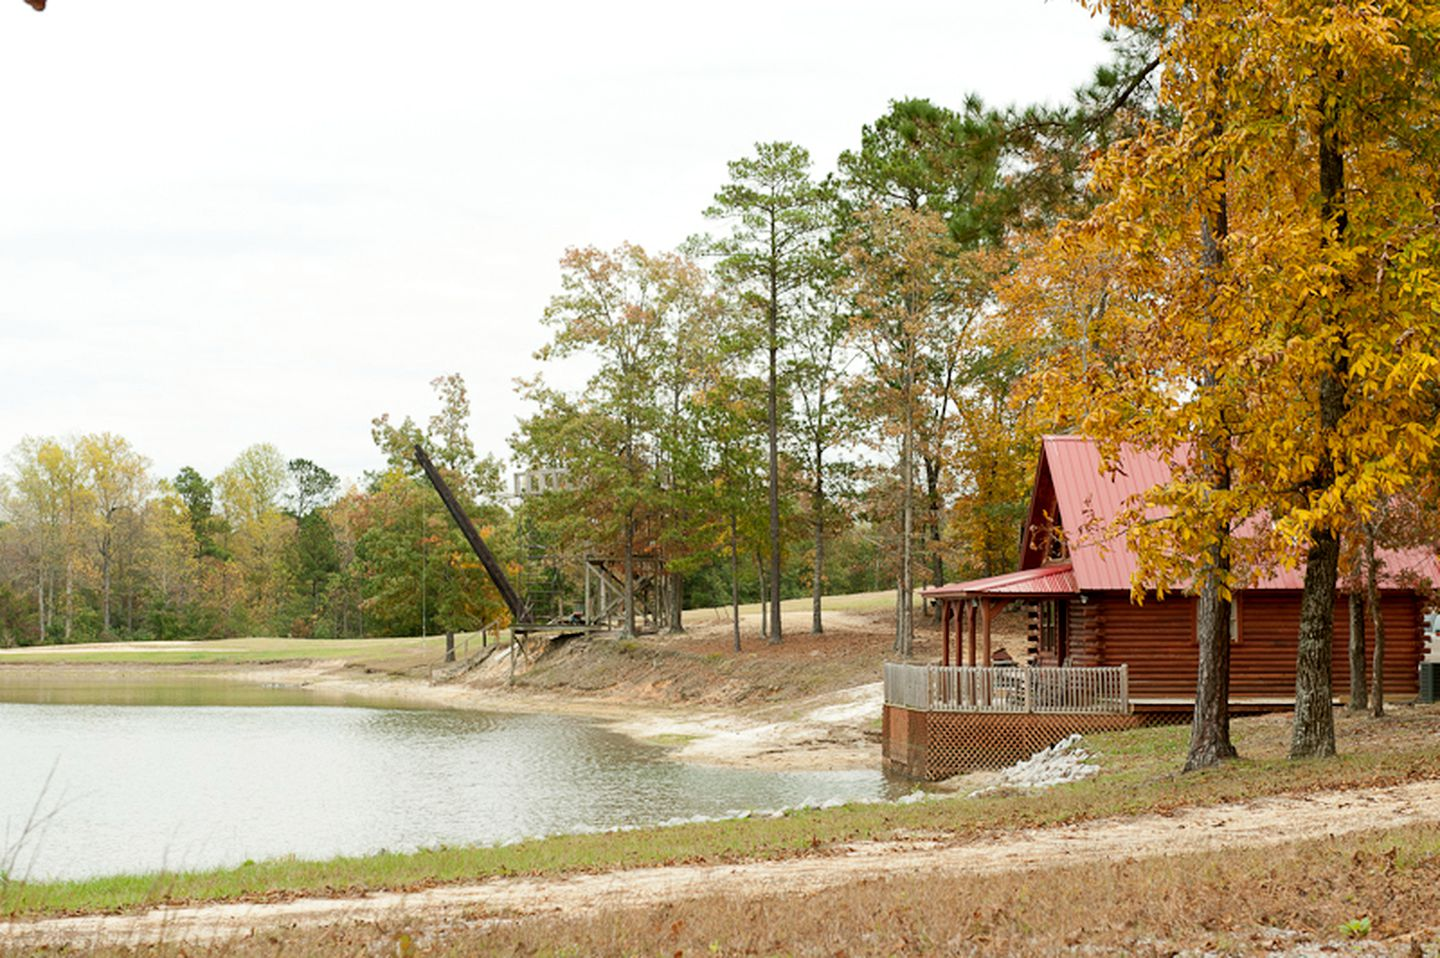 Cabins (Society Hill, South Carolina, United States)